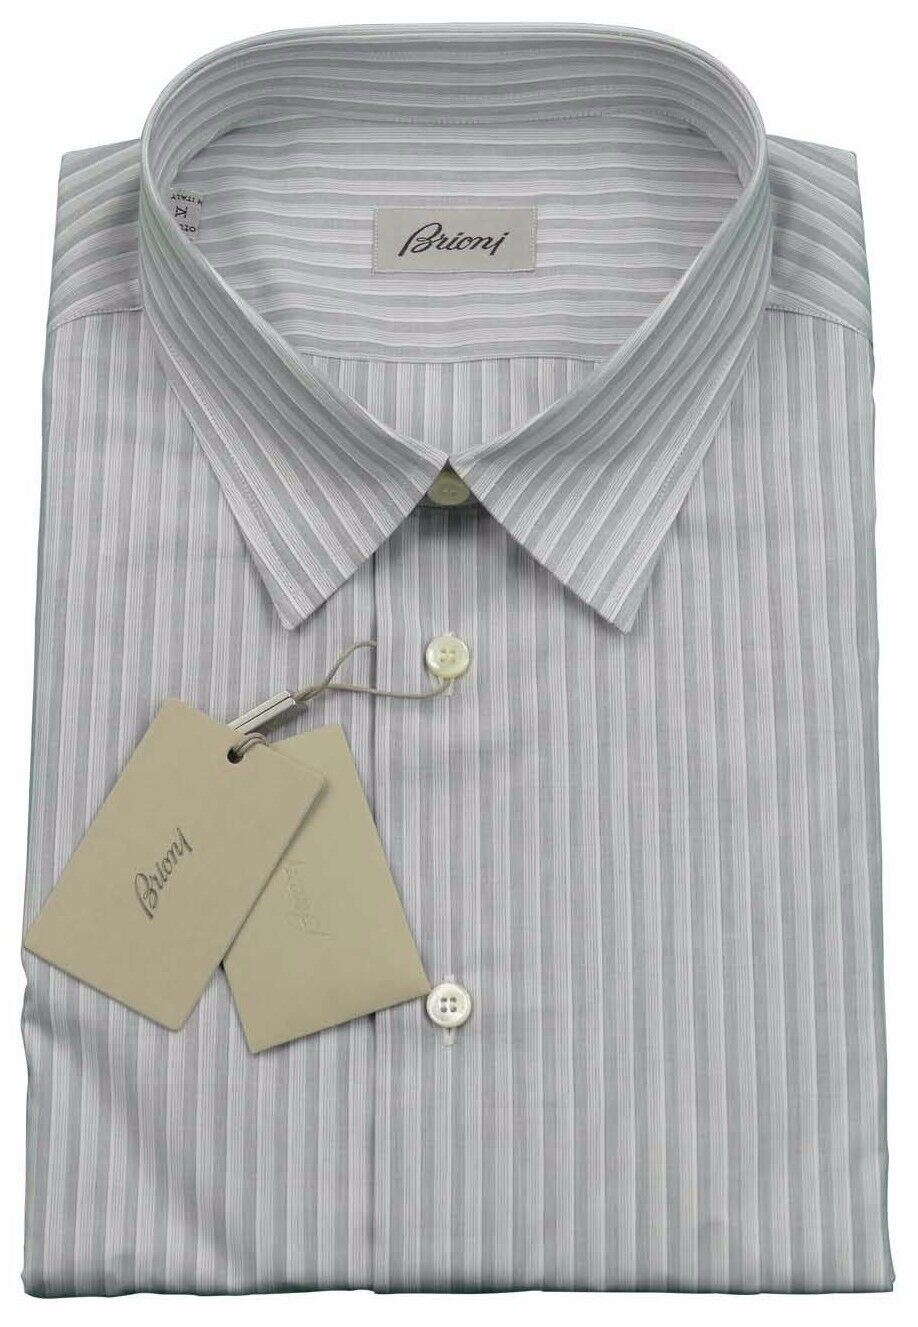 Brioni Herren H   S-SHIRT 100% Cotton Handgefertigt in Italien Neu mit Etikett  | Good Design